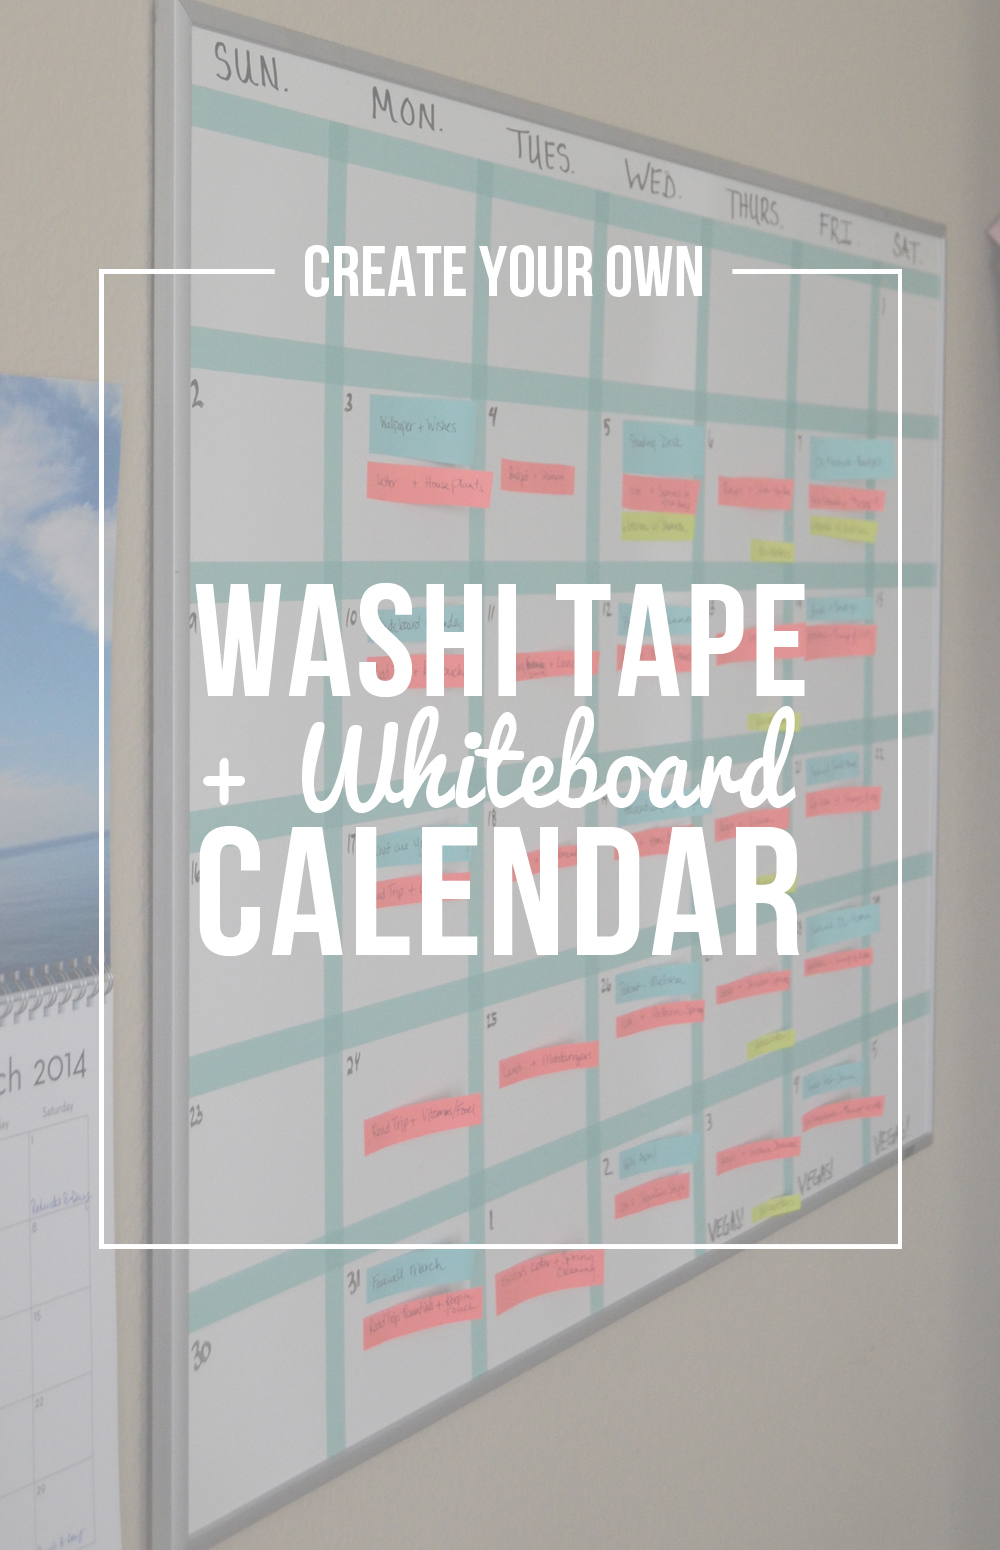 Create Your Own: Washi Tape + Whiteboard Calendar